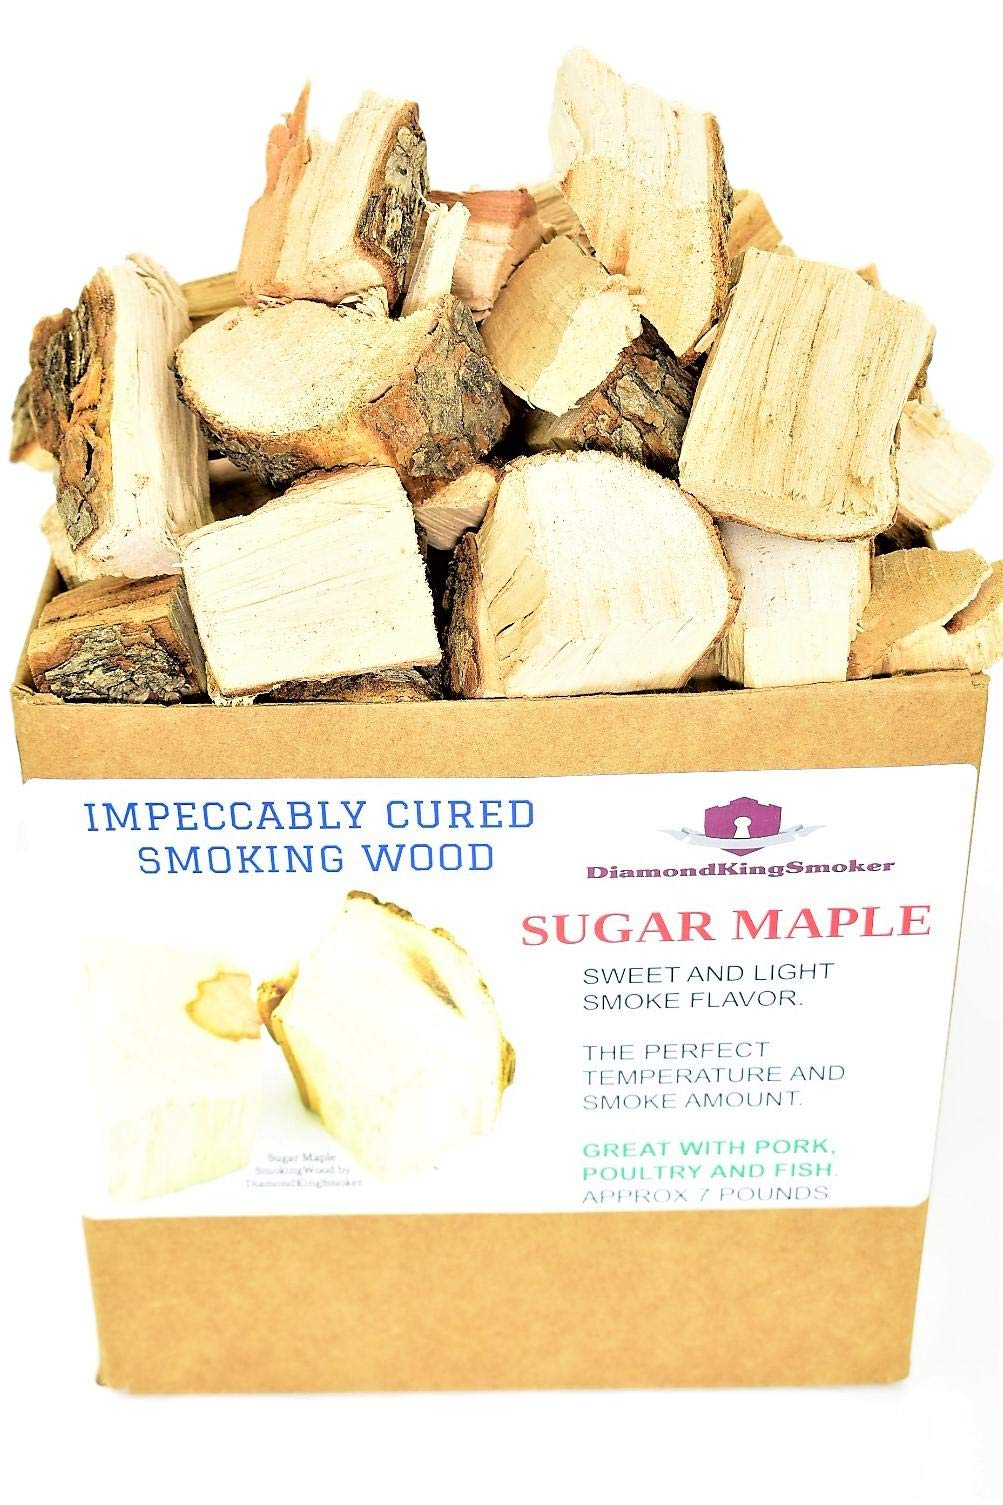 DiamondKingSmoker Sugar Maple Smoking Wood Chunks 100% All Natural Barbecue Smoker Chunks for Grilling and BBQ | Large Cut Smoker Chips | Impeccably Cured for Premium Flavor Profile (7lbs) by DiamondKingSmoker